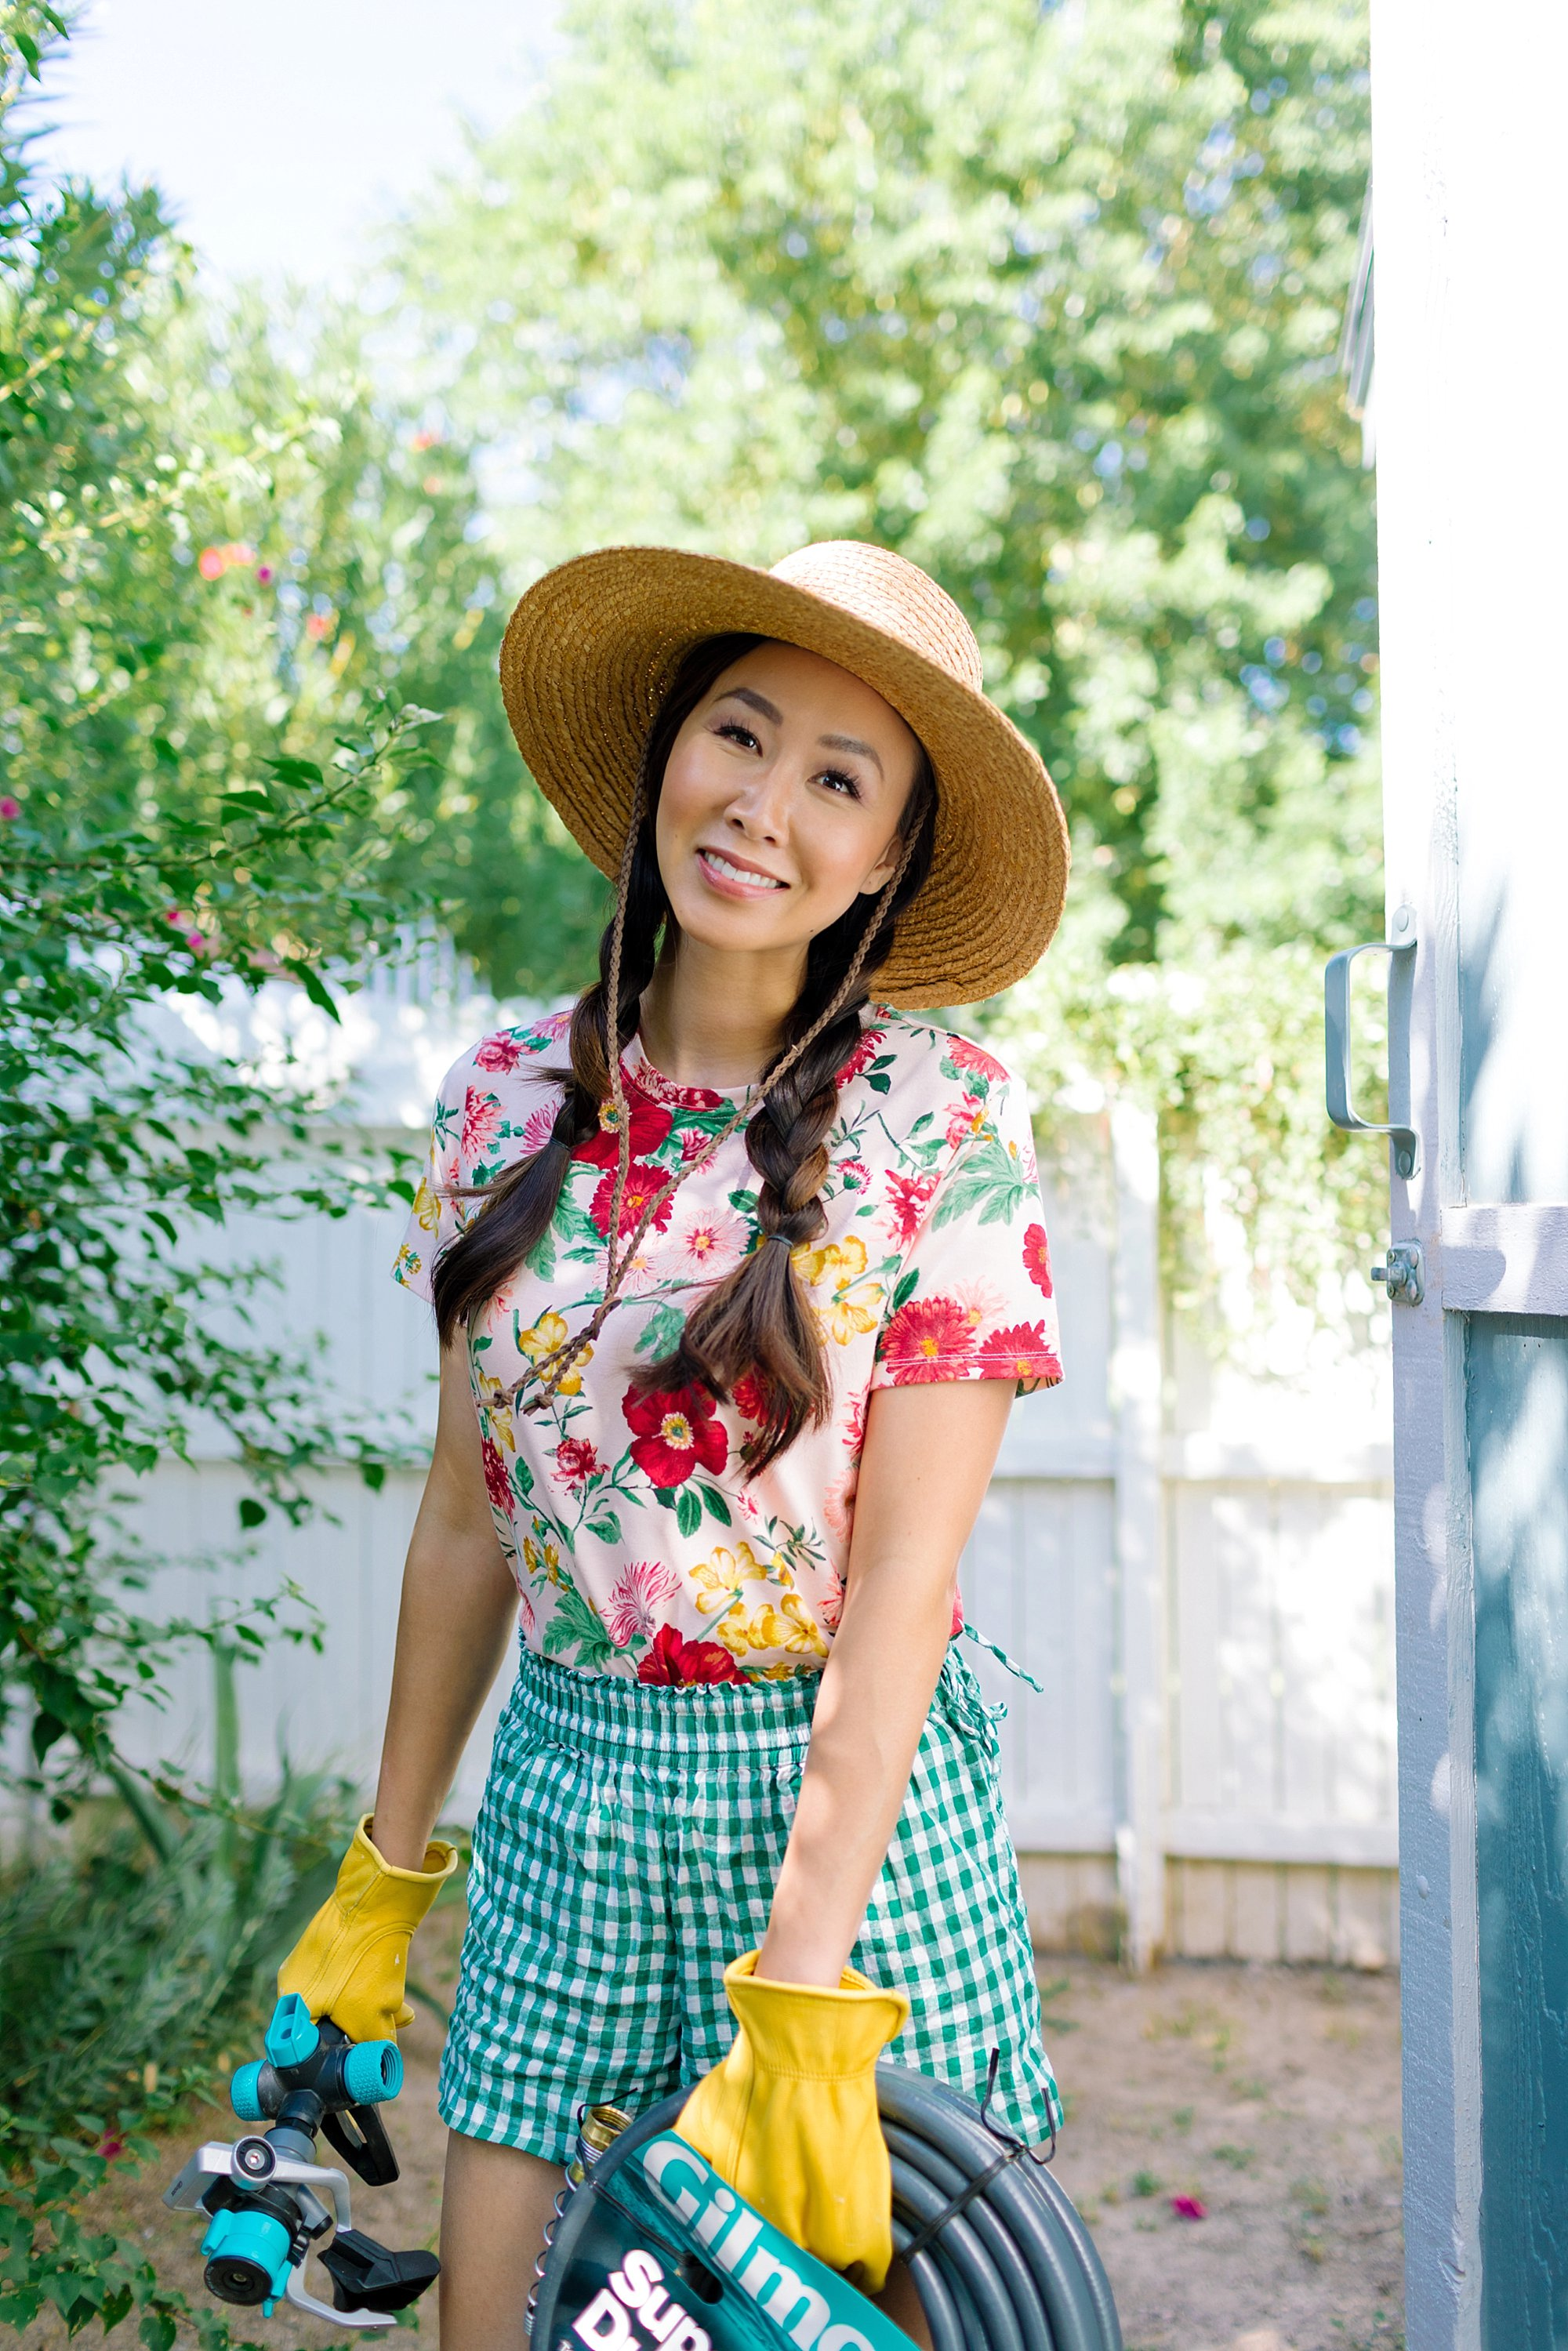 Garden preparation with Fiskars and Gilmour flexogen hose with tool shed tour garden lifestyle blogger Diana Elizabeth phoenix arizona wearing floral shirt and gingham shorts